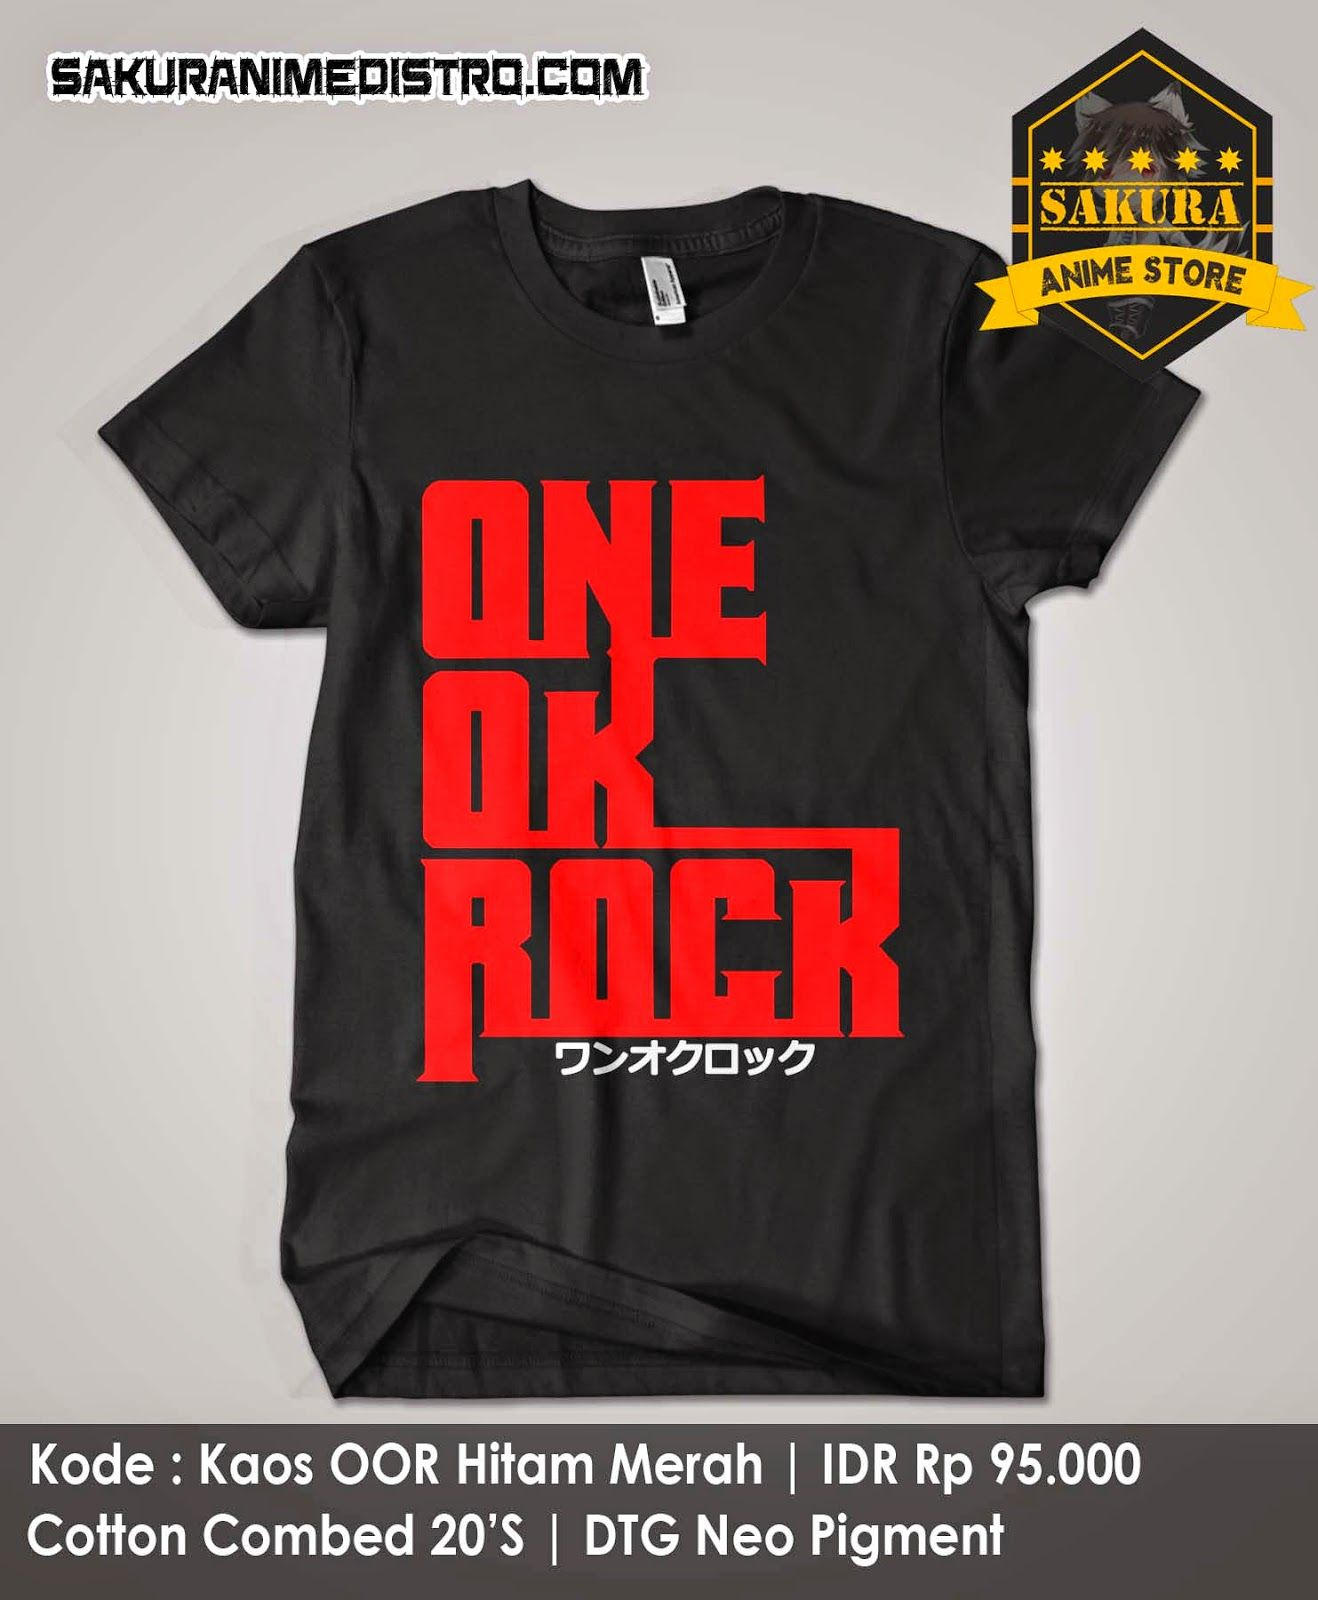 Kaos One Ok Rock Hitam One ok rock, Hitam, dan Scandal